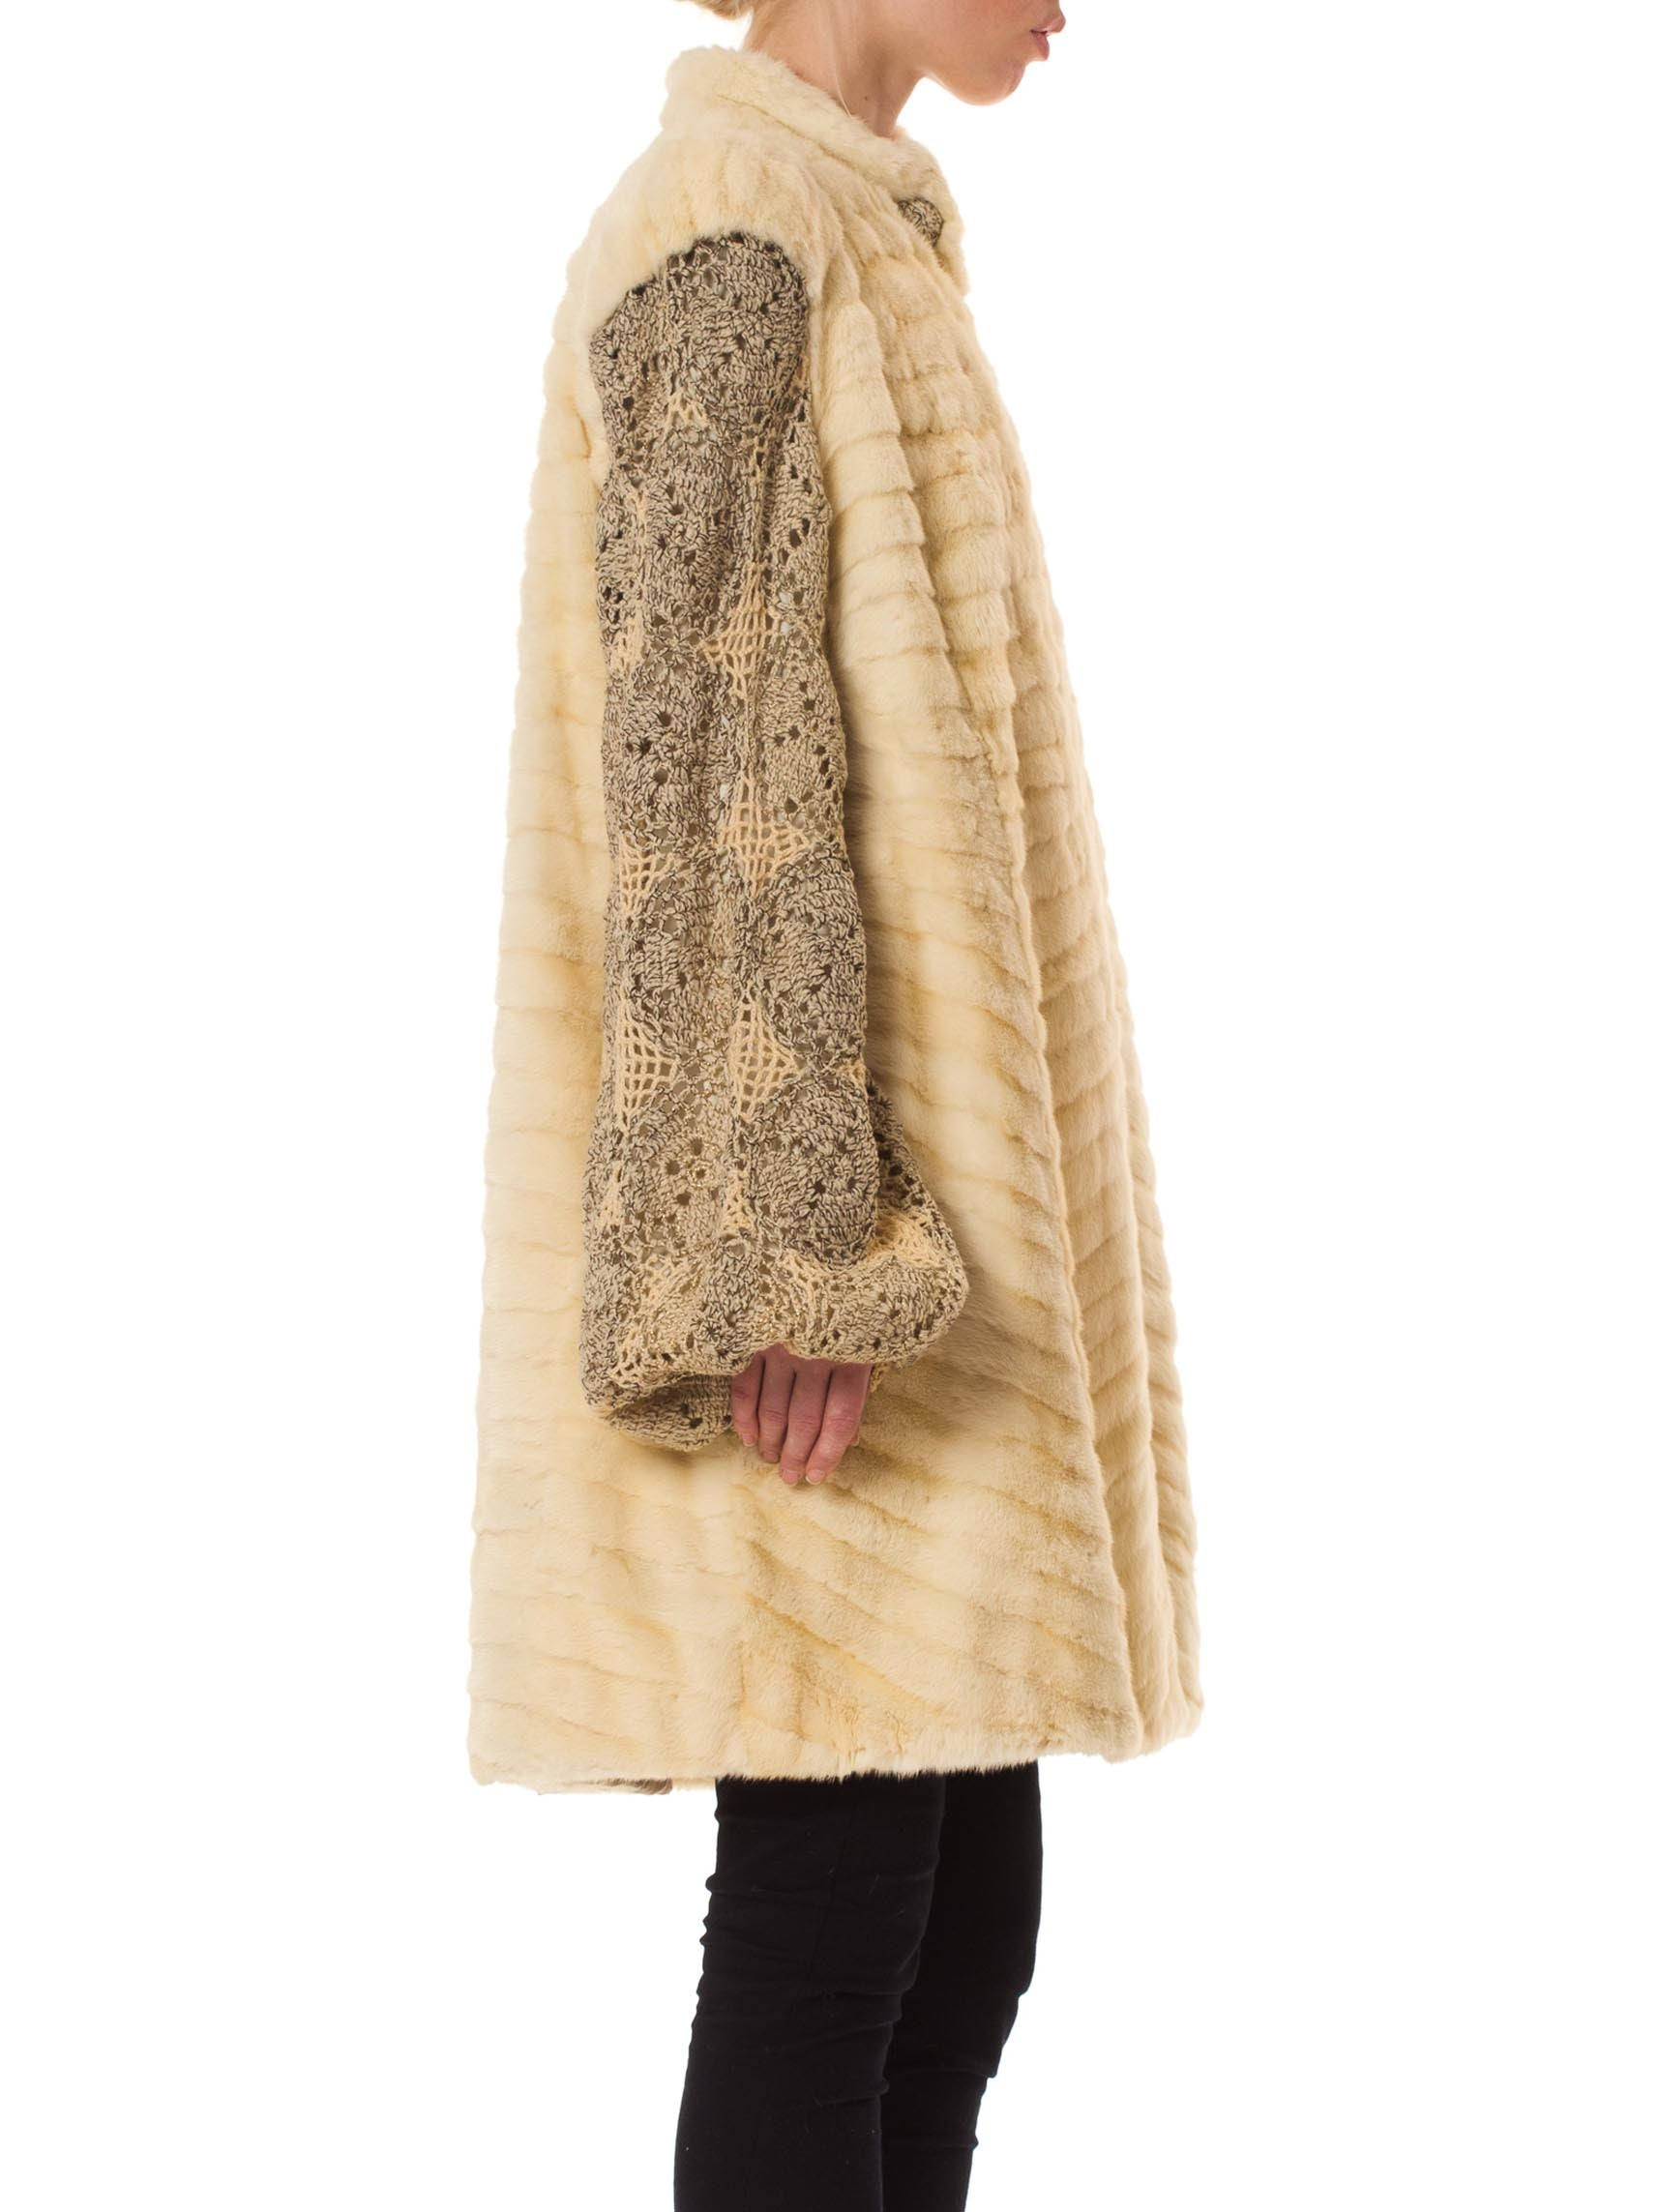 1930S Cream Metallic Wool Blend Crochet Lace Sleeved Ermine Fur Coat